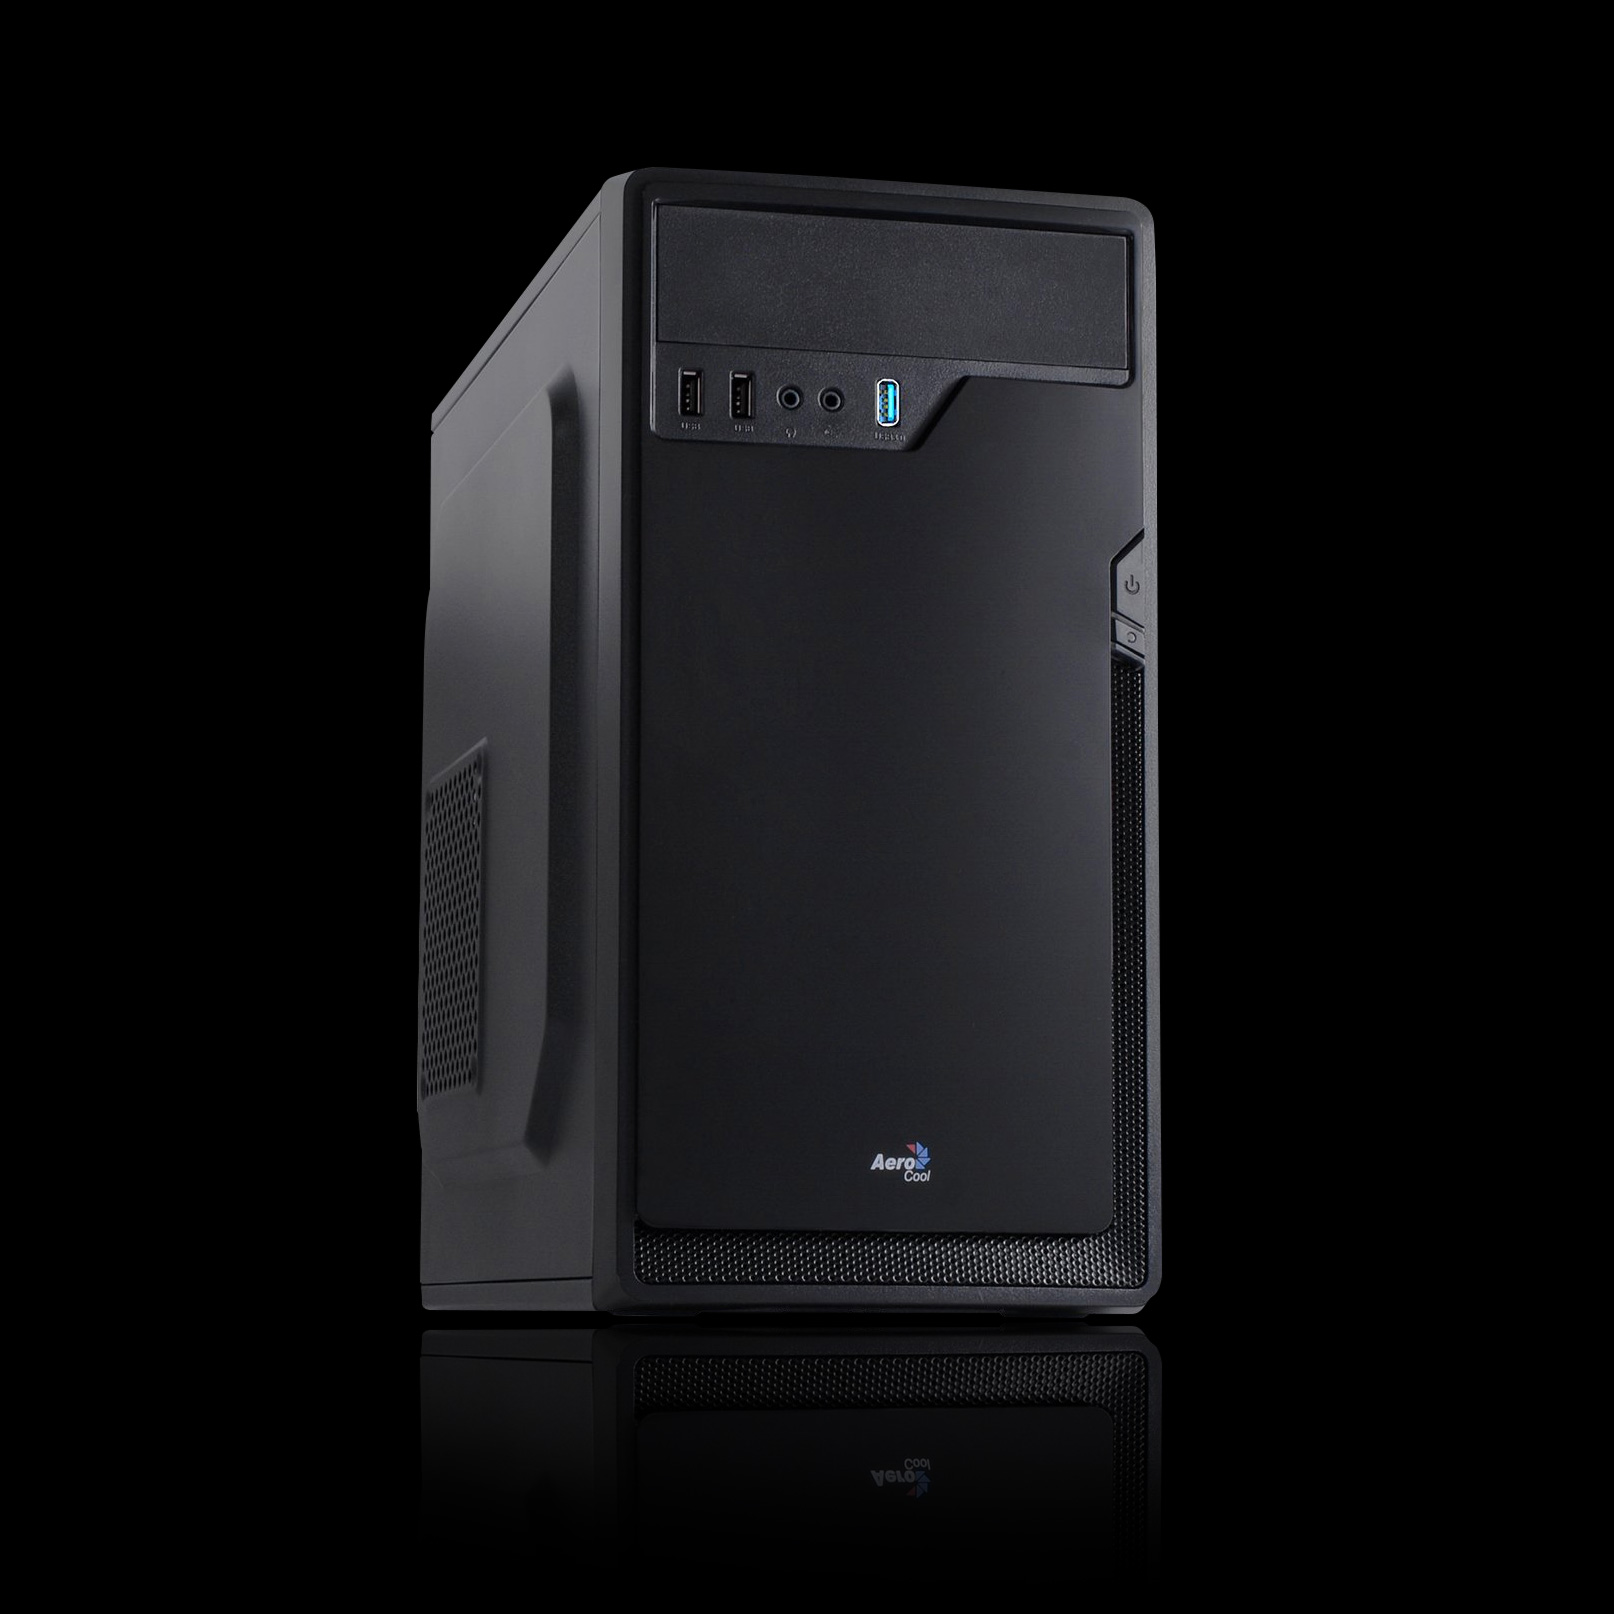 Chillblast Fusion Ark 2 Family PC - Outlet